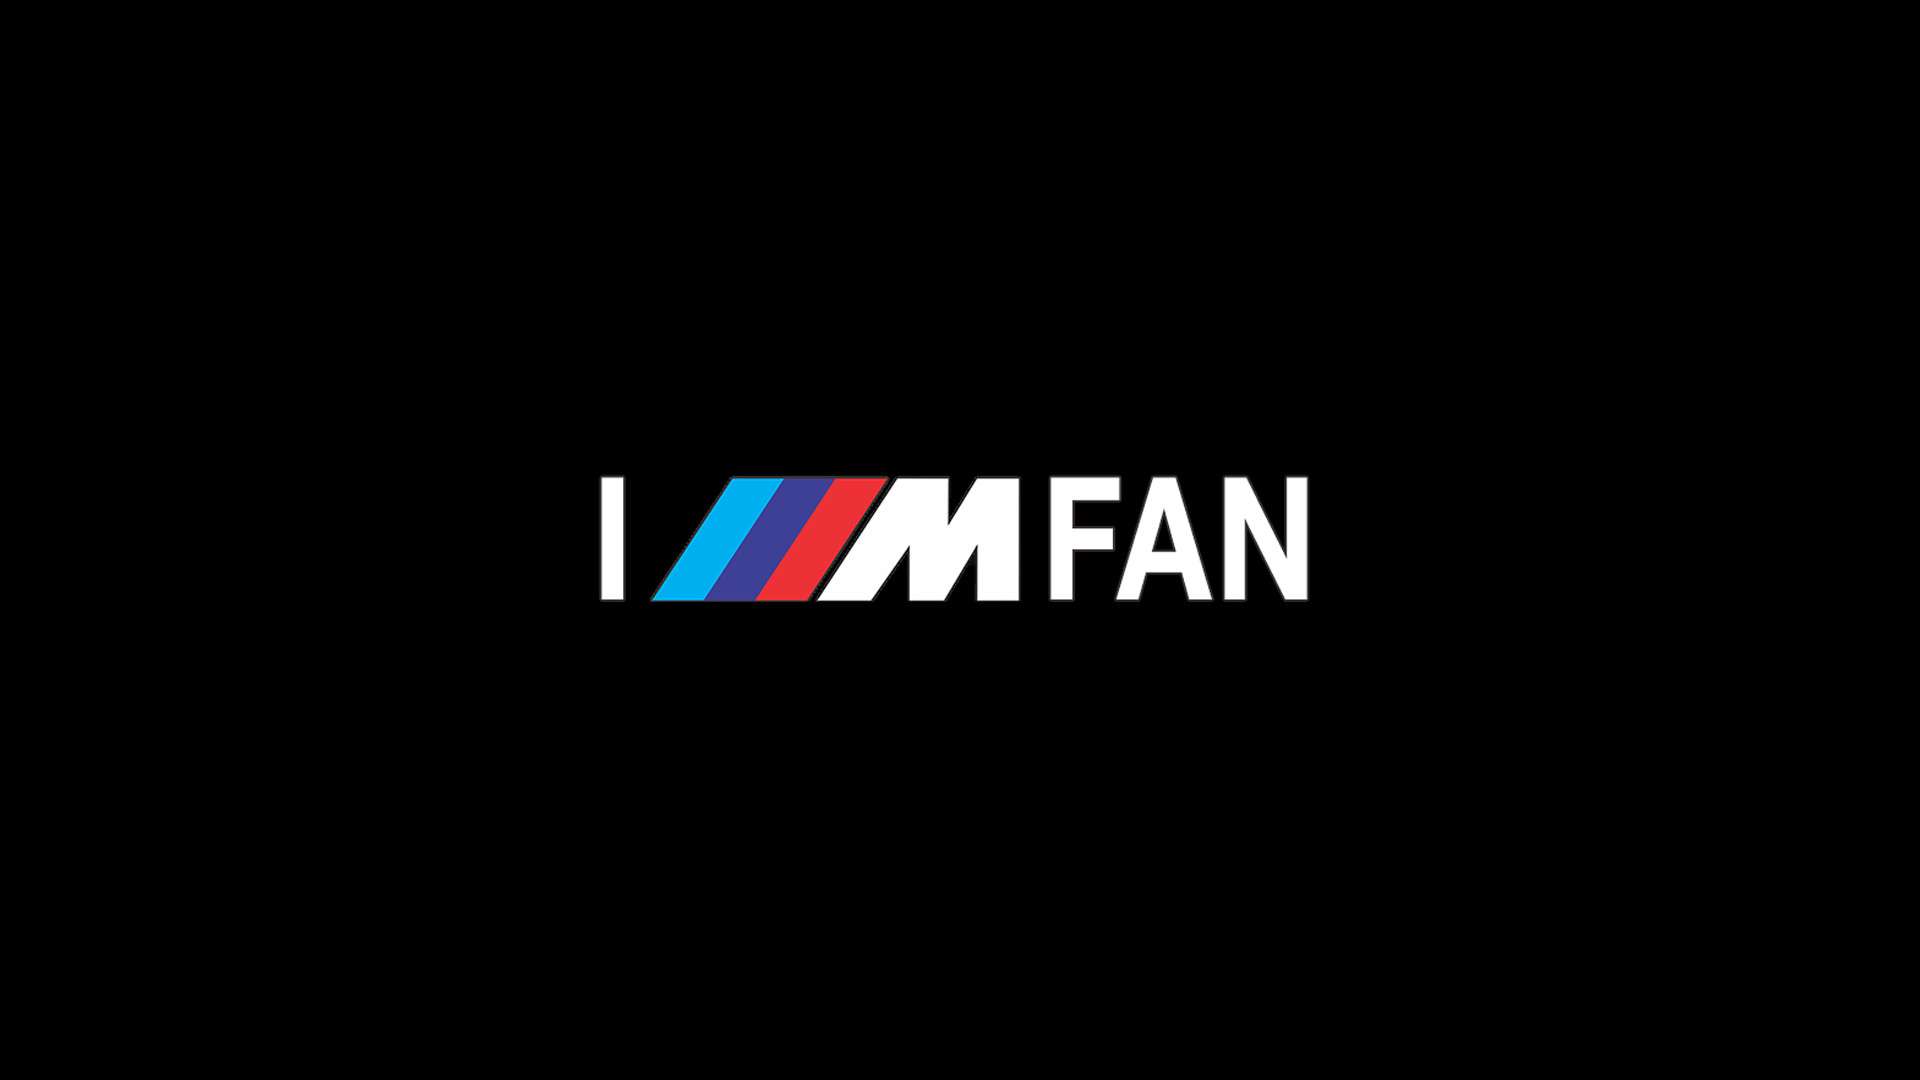 Live Car Wallpapers For Iphone 7 Bmw Logo Hd Wallpaper 70 Images